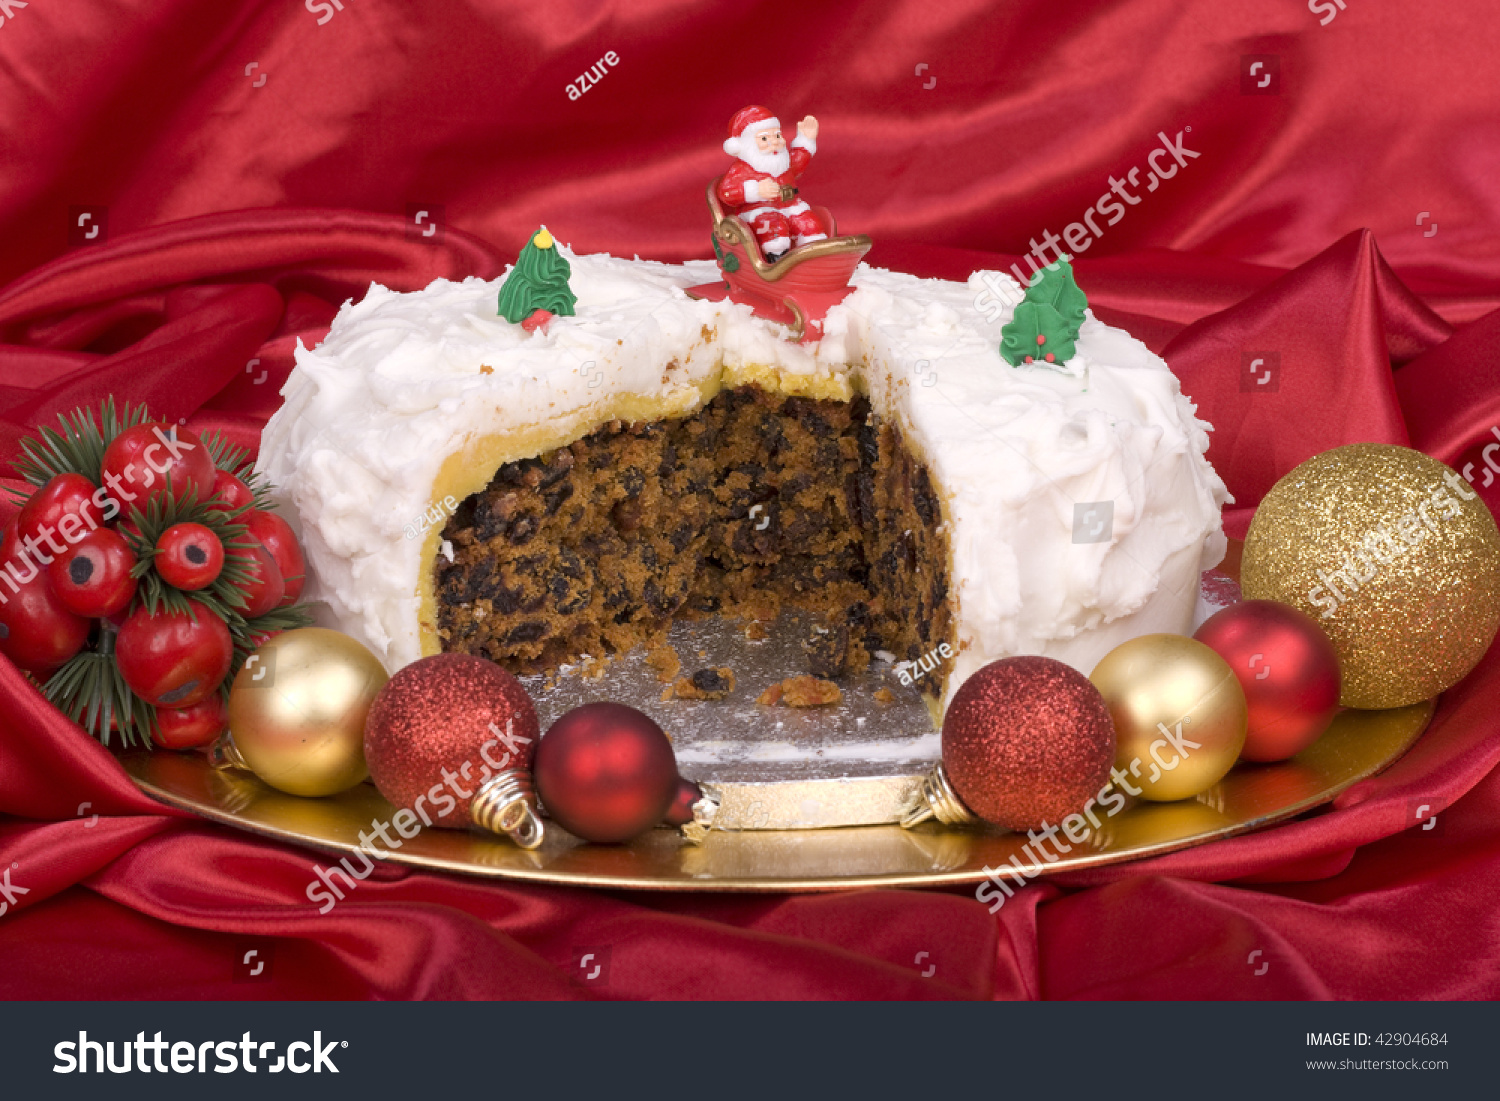 Home baked christmas cake with decorations stock photo for Baking oranges for christmas decoration